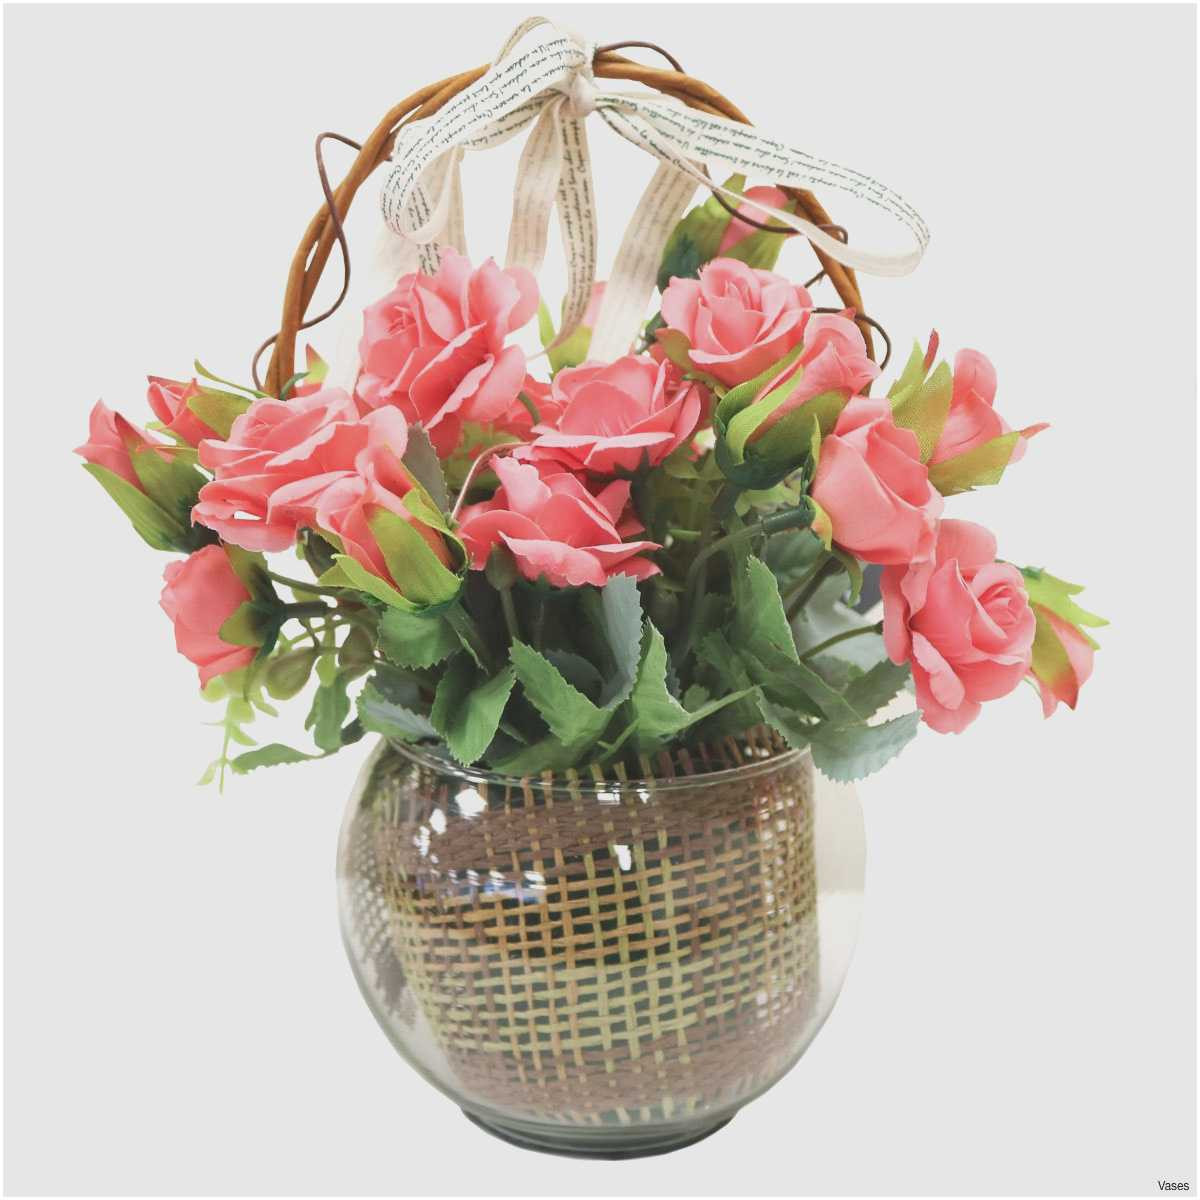 green flower vase of march 2018 travelling to best destination intended for bf142 11km 1200x1200h vases pink flower vase i 0d gold inspiration beautiful of tropical flowers